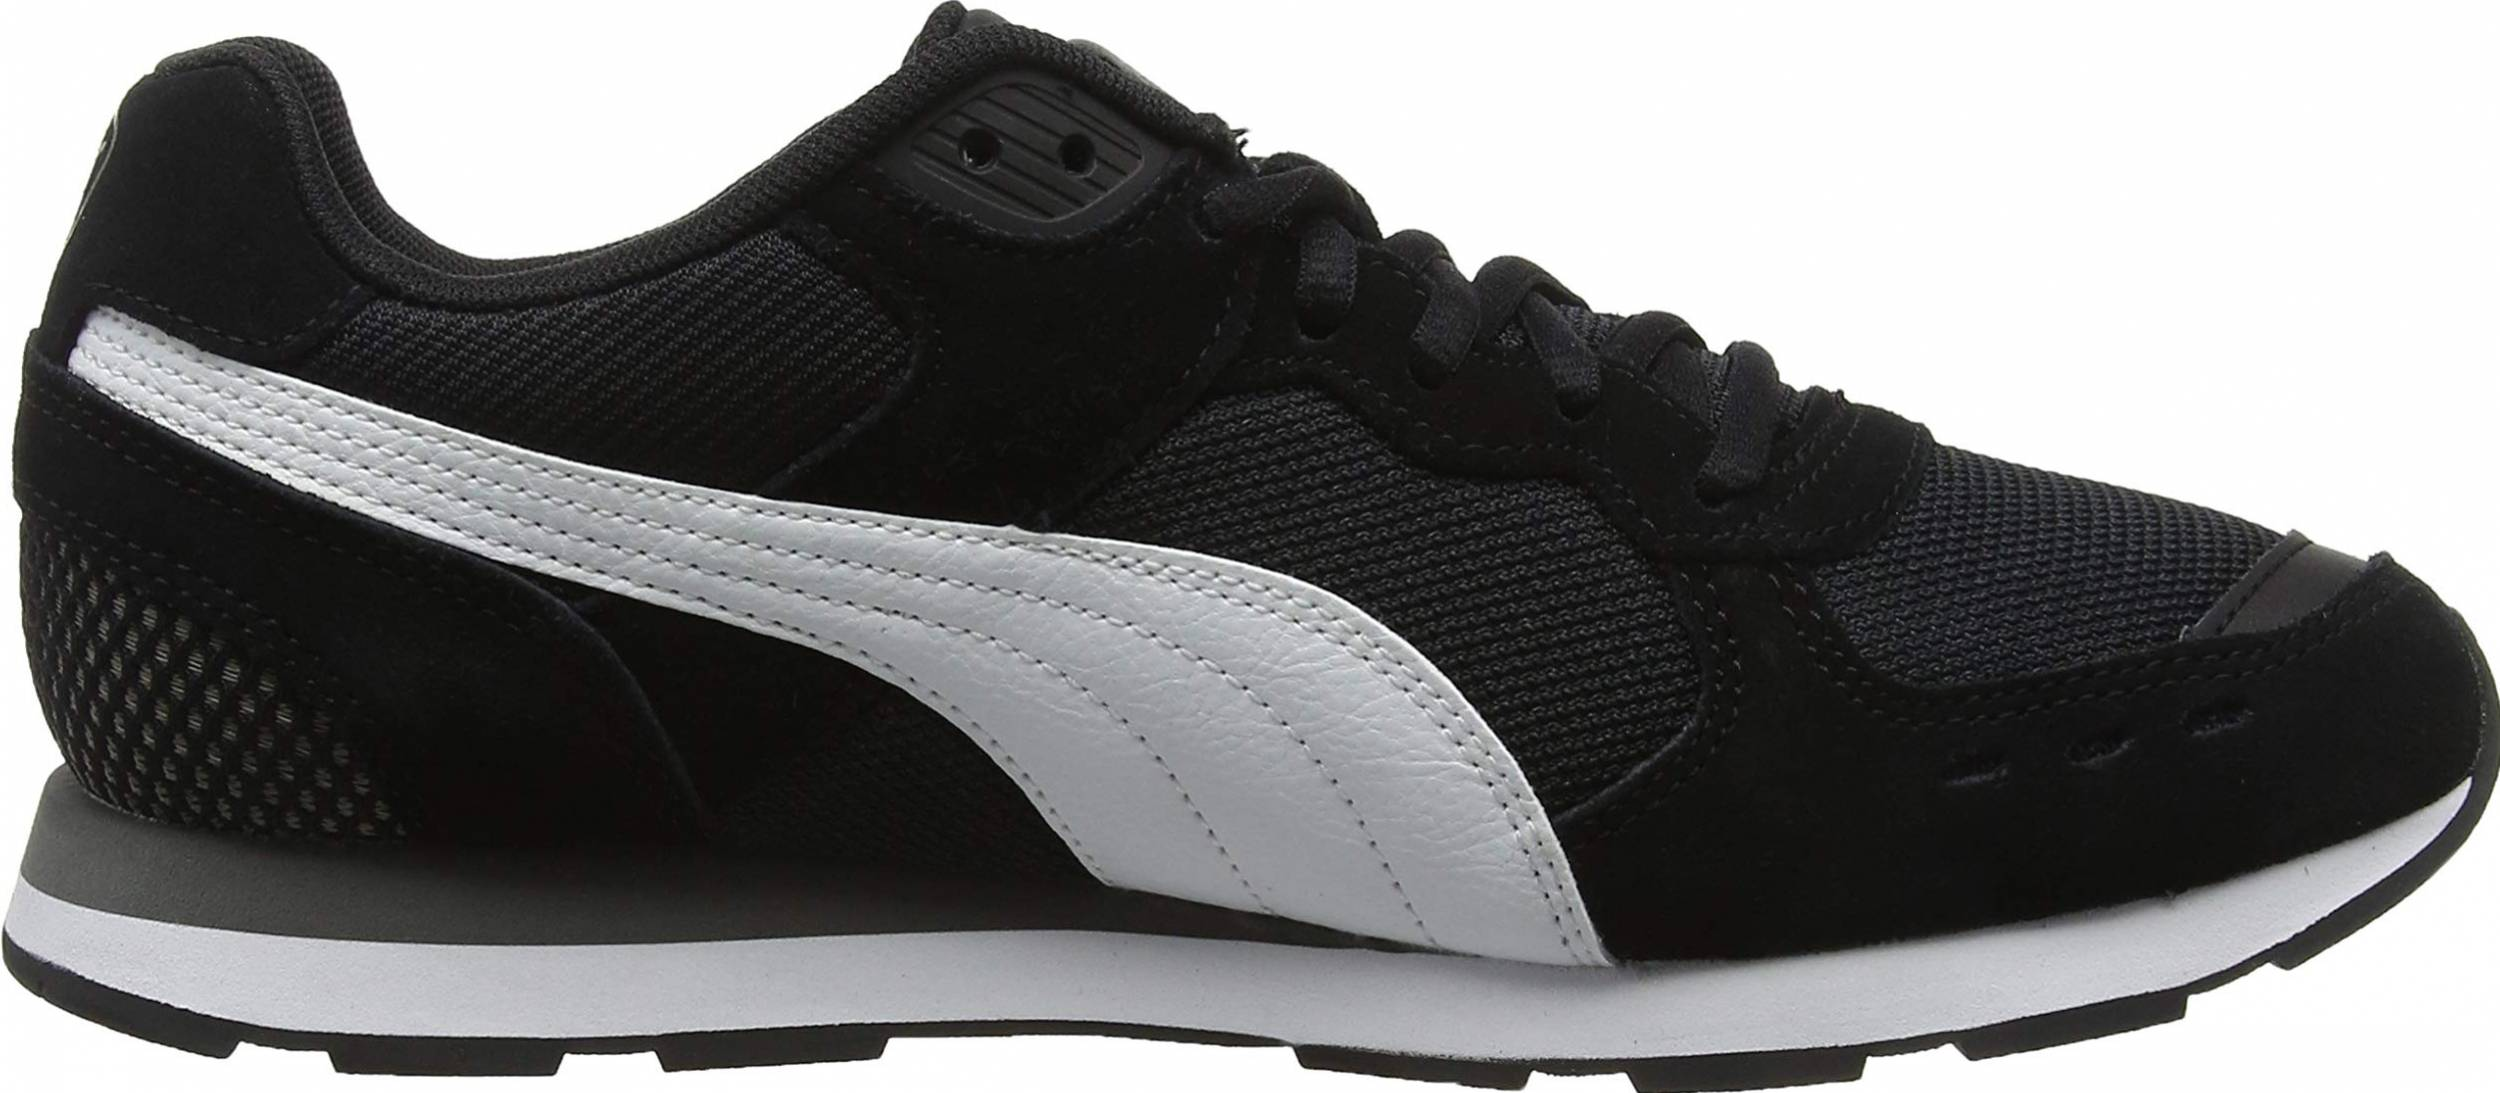 Only $21 + Review of Puma Vista   RunRepeat